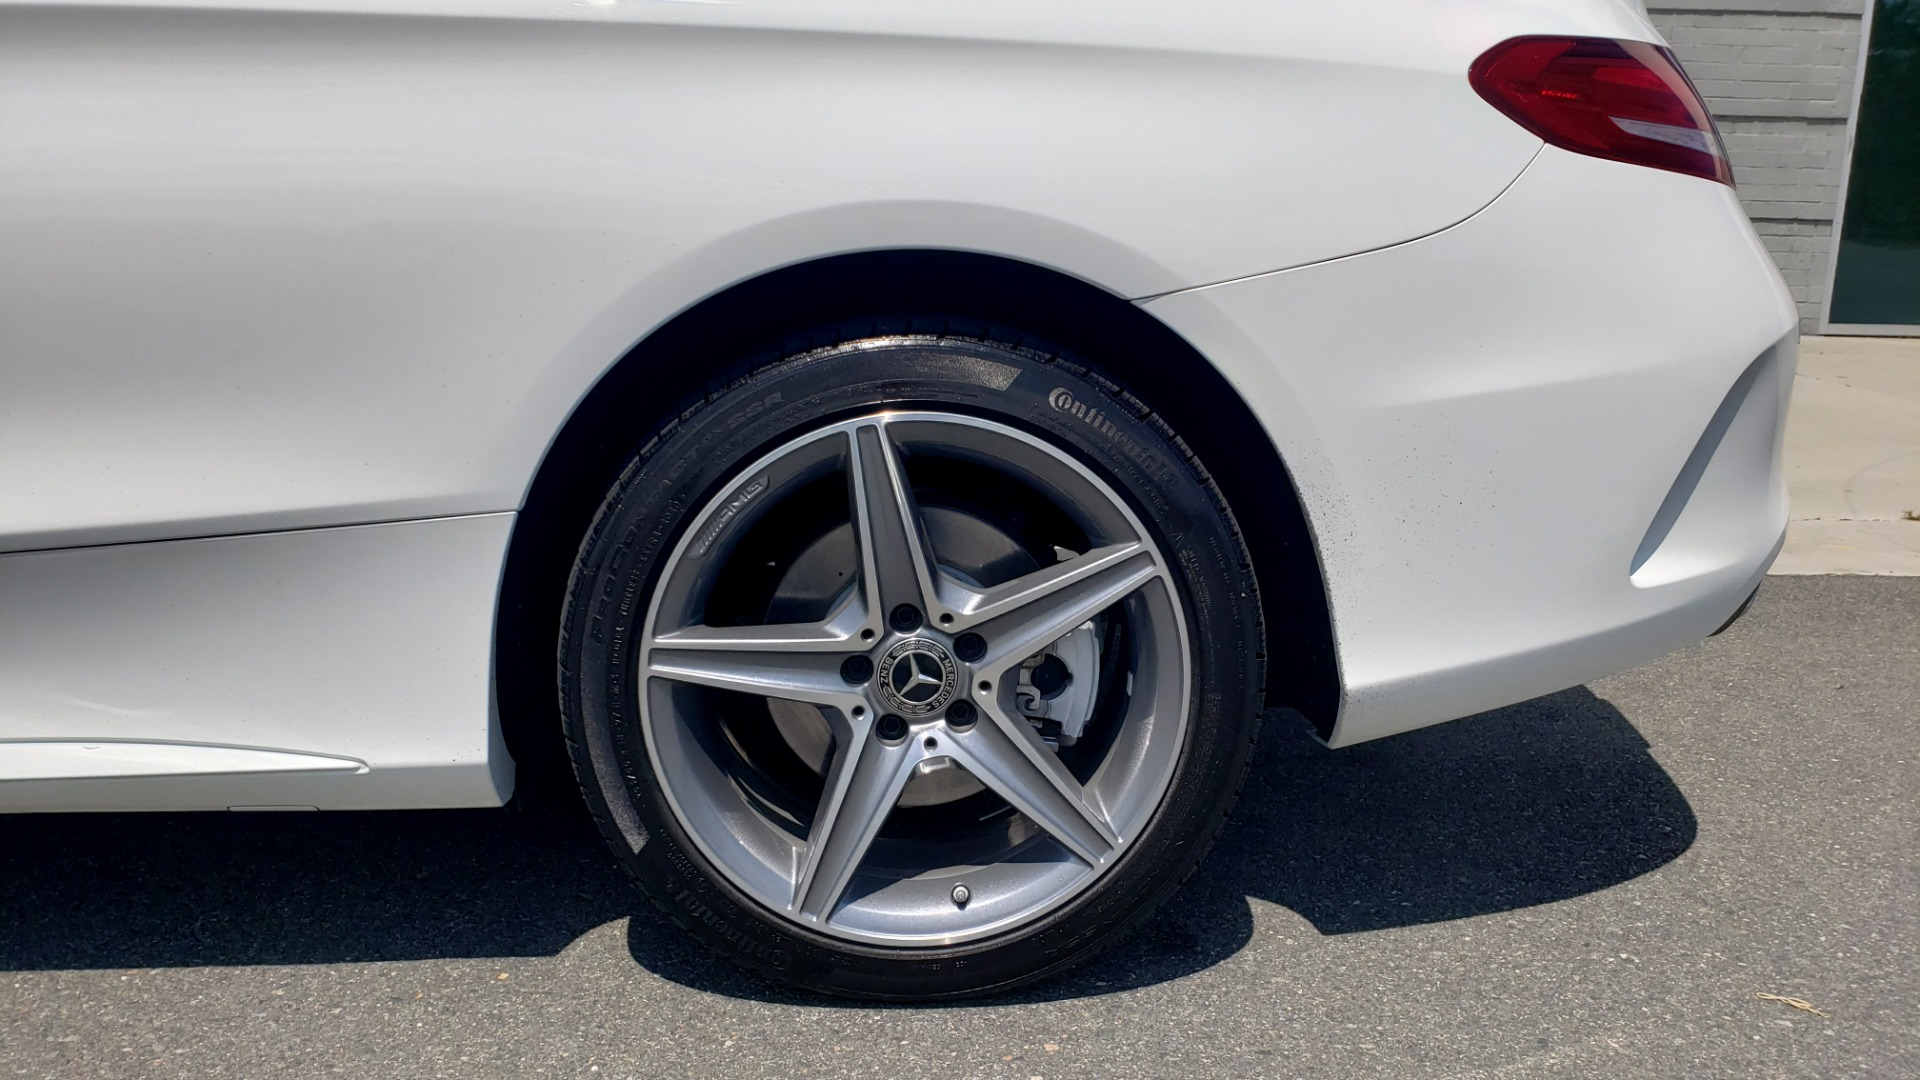 Used 2018 Mercedes-Benz C-CLASS C 300 CABRIOLET PREMIUM / AWD / BURMESTER SND / APPLE / REARVIEW for sale $44,995 at Formula Imports in Charlotte NC 28227 79